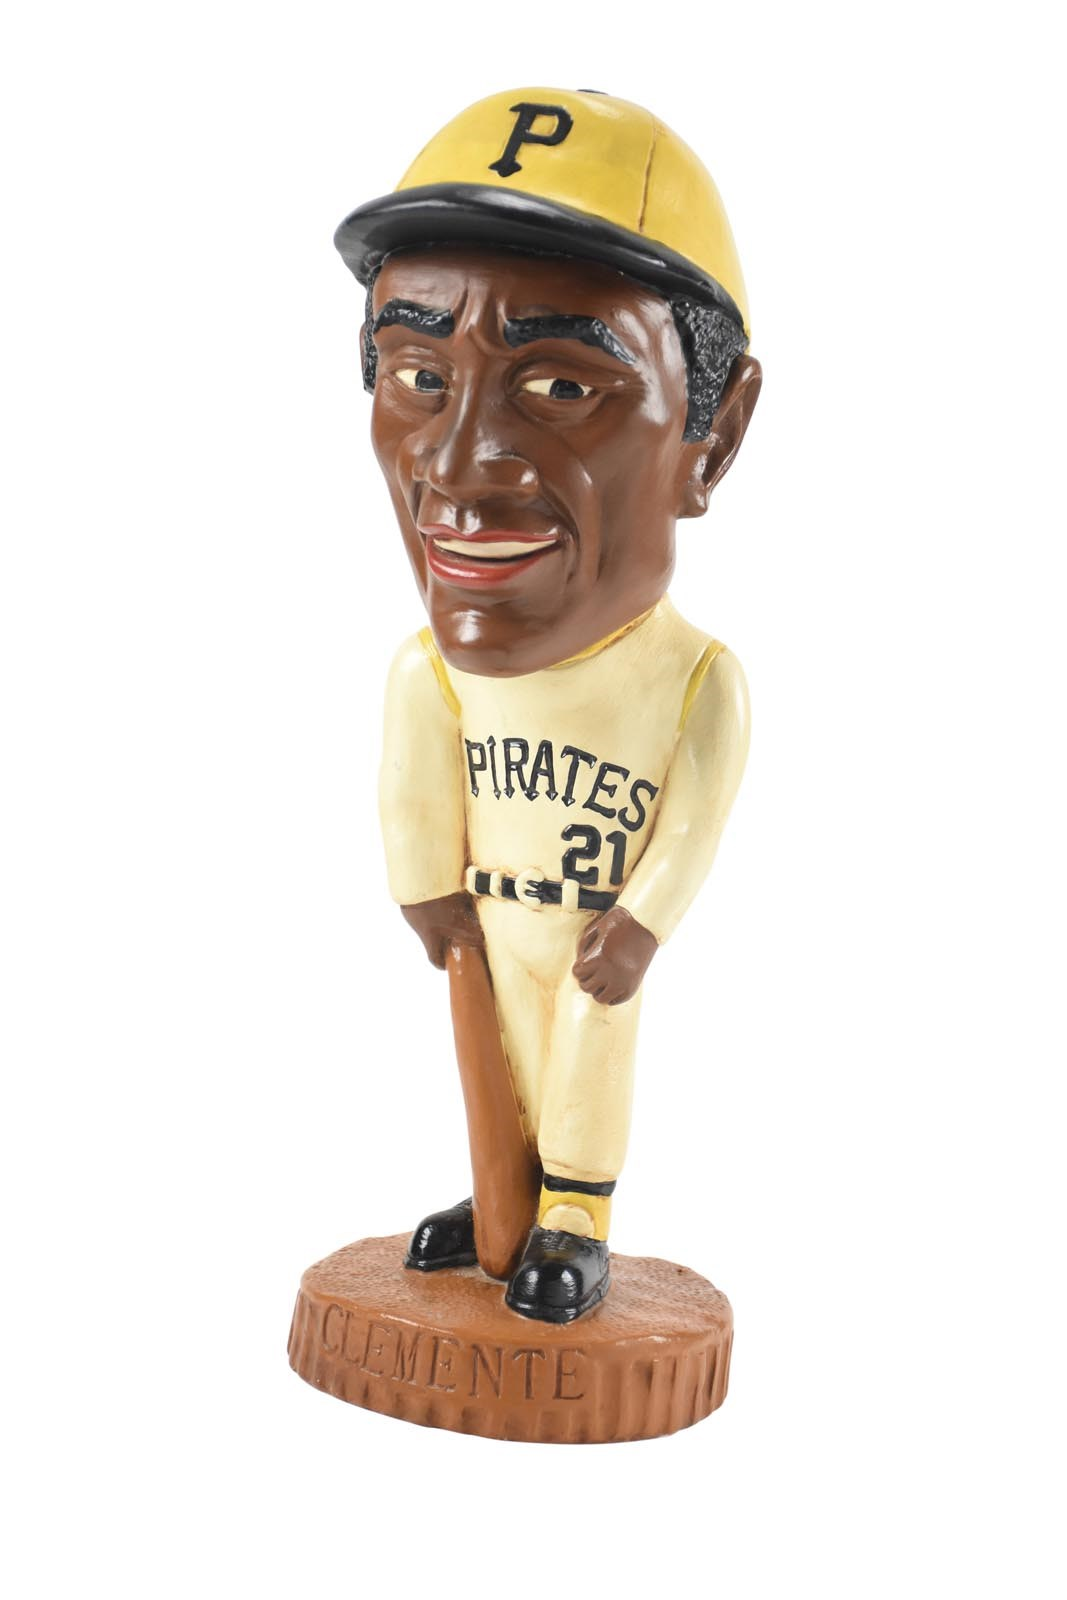 Clemente and Pittsburgh Pirates - 2019 Winter Classic